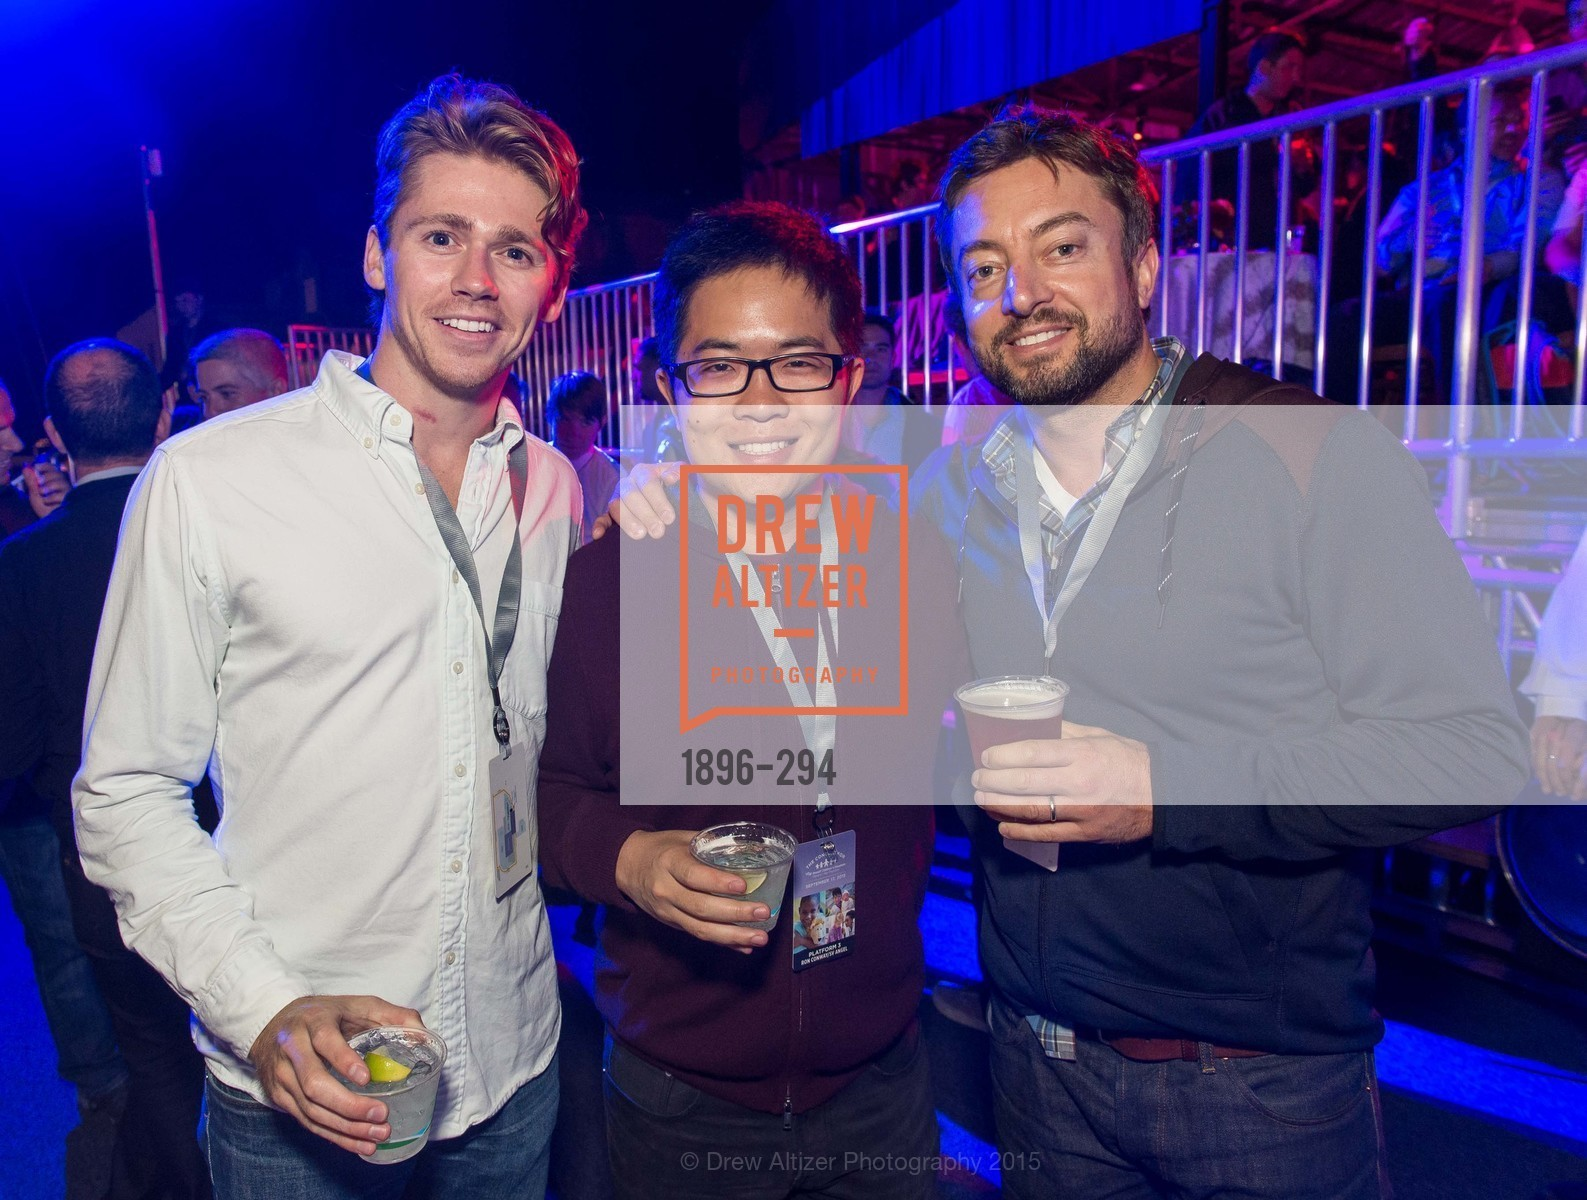 Abram Dawson, Mike Lyu, Andreas Lieber, The Concert For UCSF Benioff Children's Hospital, Pier 70, September 17th, 2015,Drew Altizer, Drew Altizer Photography, full-service agency, private events, San Francisco photographer, photographer california